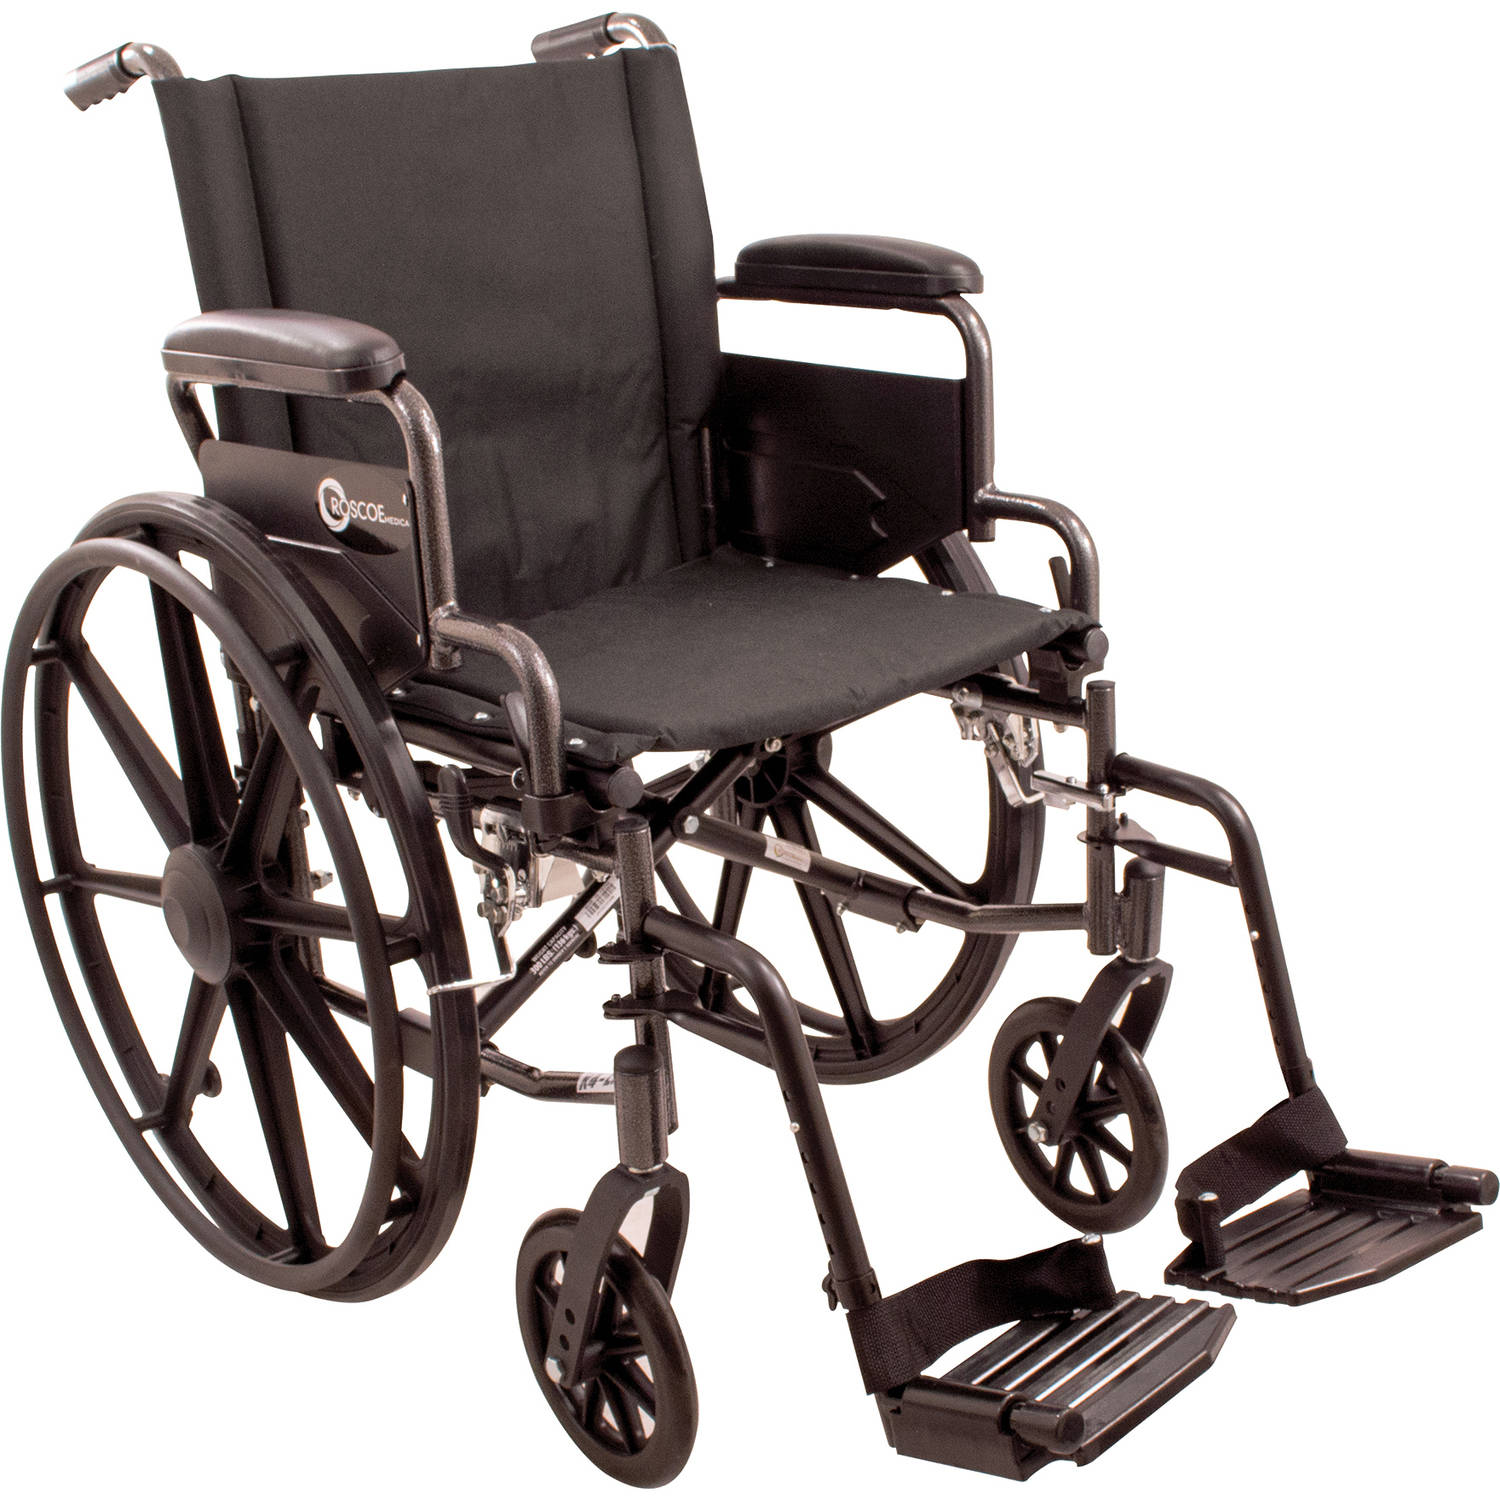 "Roscoe K4-Lite Wheelchair, 16"" with Swing Away Footrests"